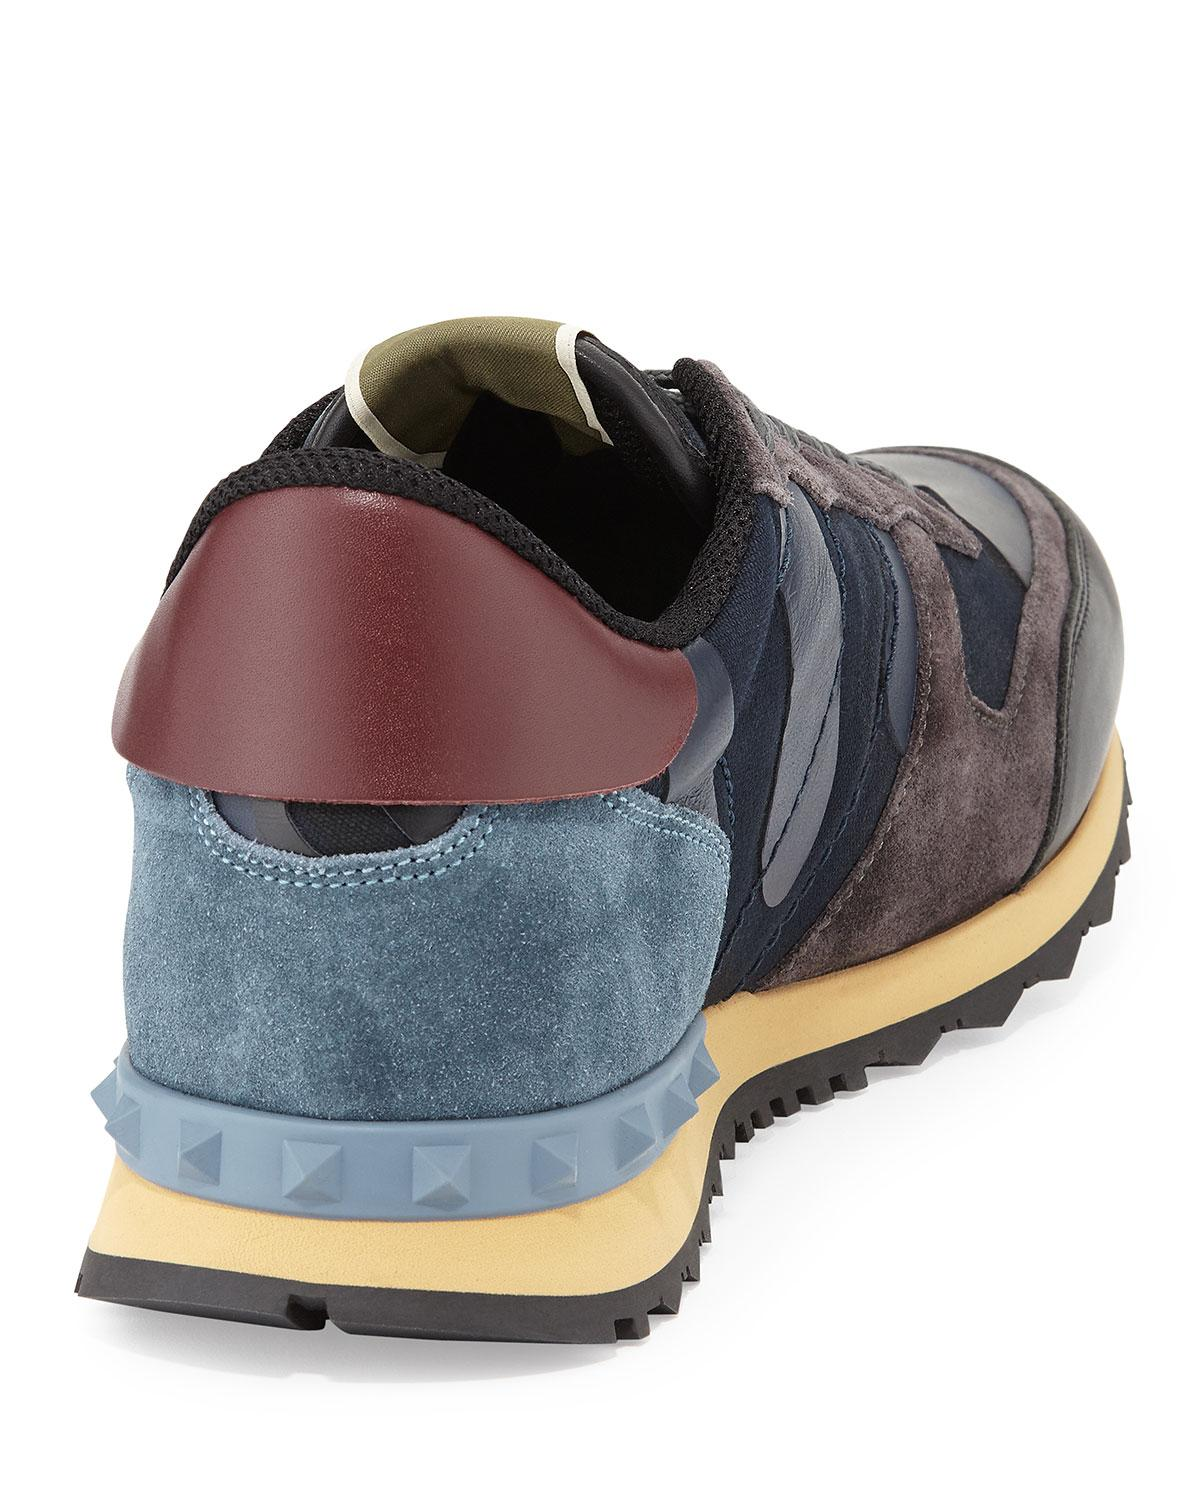 96b5079a074d8 Gallery. Previously sold at: Neiman Marcus · Men's Valentino Rockrunner